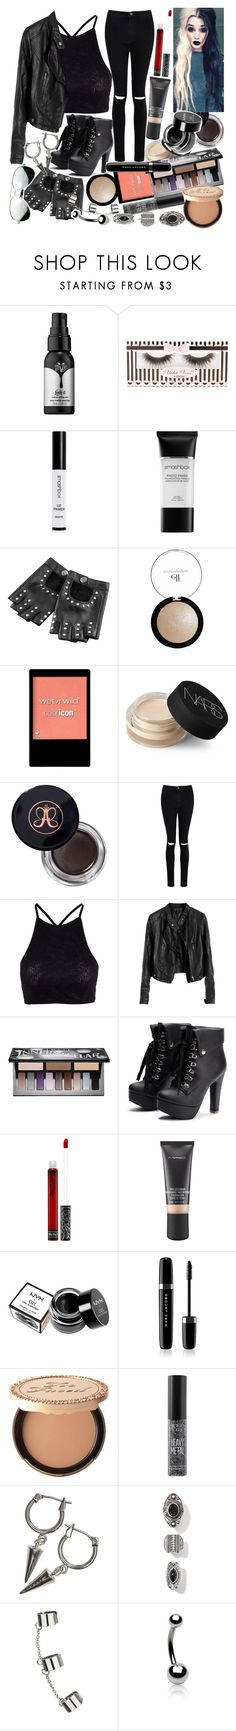 """Why don't you say so? I think I'm caught in between, the nights and days fly by when I'm lost on the streets. And my eyes, they despise you for who I am"" by thelyricsmatter ❤ liked on Polyvore featuring Kat Von D, Violet Voss, Smashbox, Wet n Wild, NARS Cosmetics, Anastasia Beverly Hills, Boohoo, Y.A.S, MAC Cosmetics and NYX"